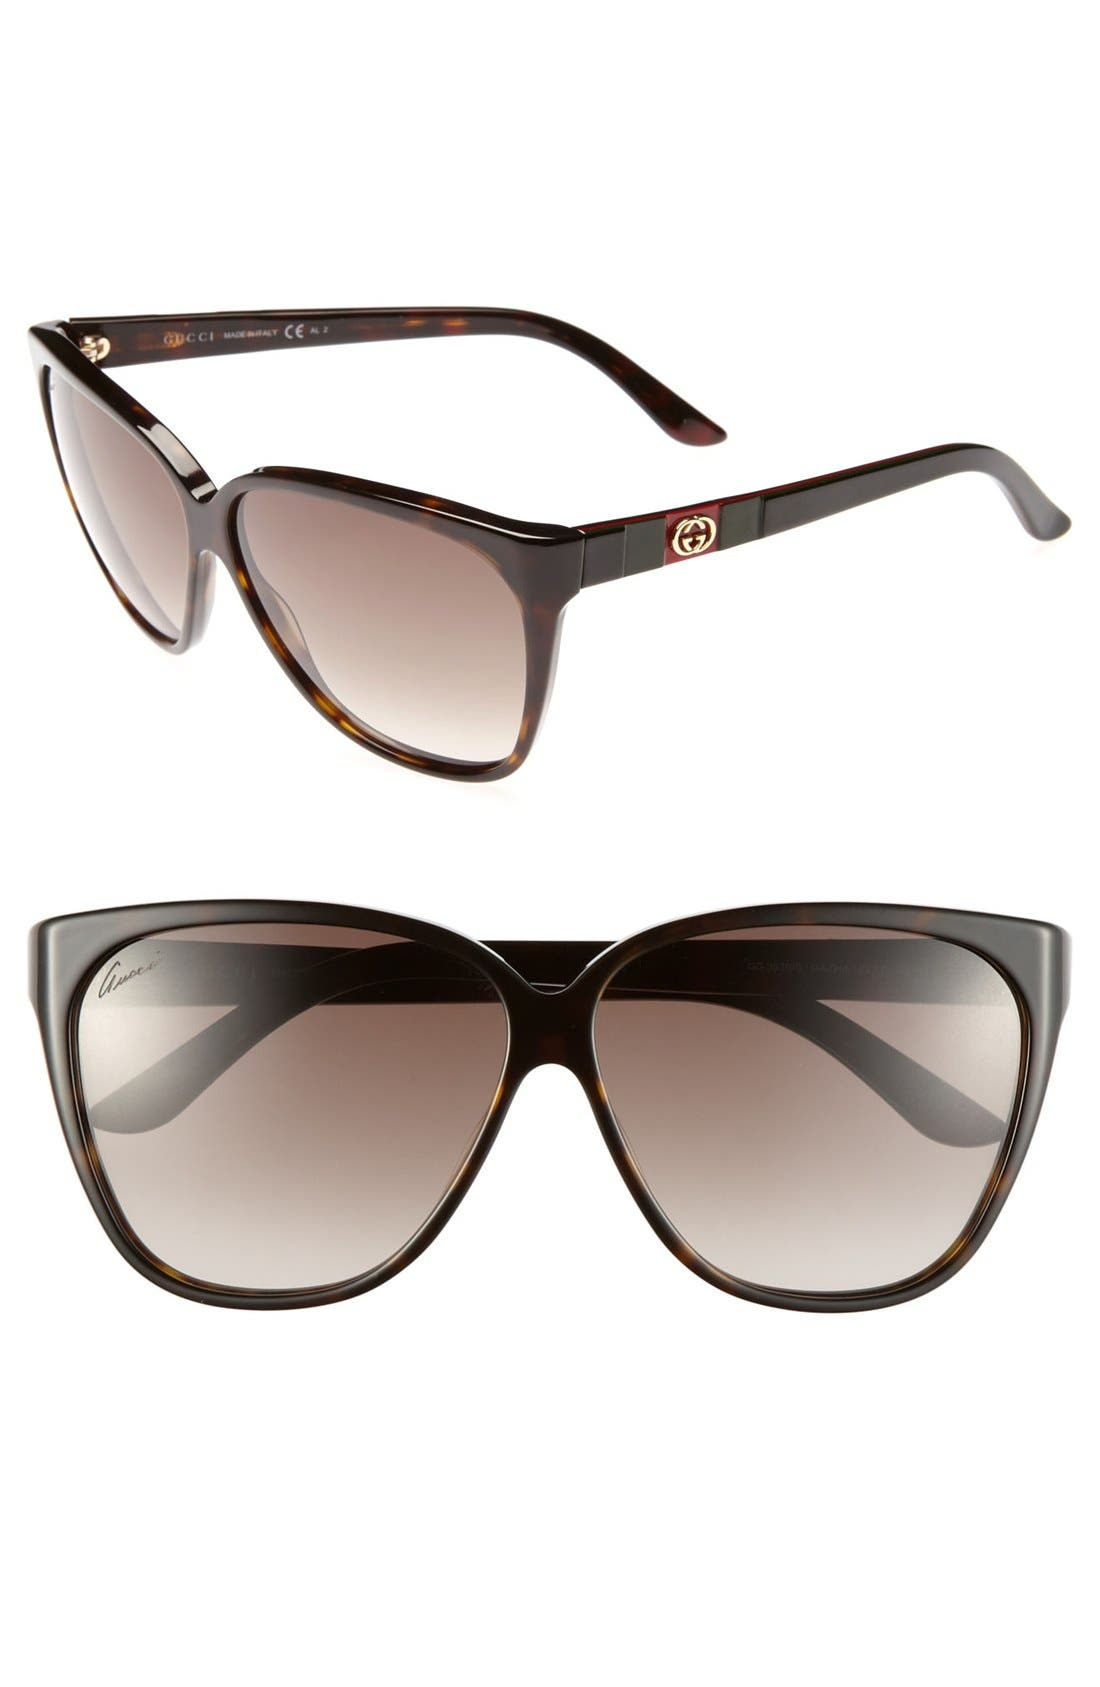 Alternate Image 1 Selected - Gucci 62mm Sunglasses